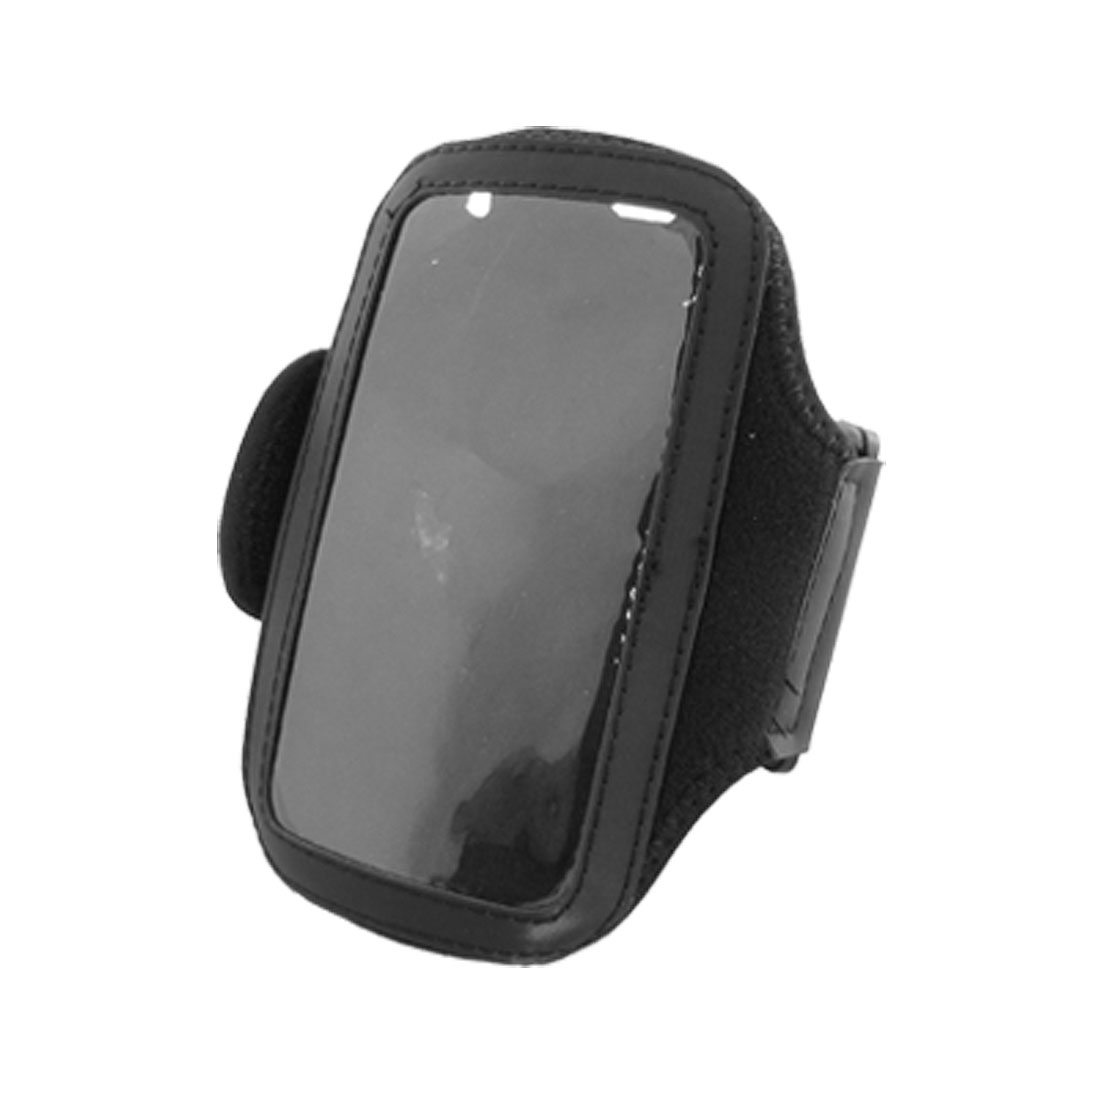 Black Detachable Closure Neoprene Armband Holder for Phone 4G